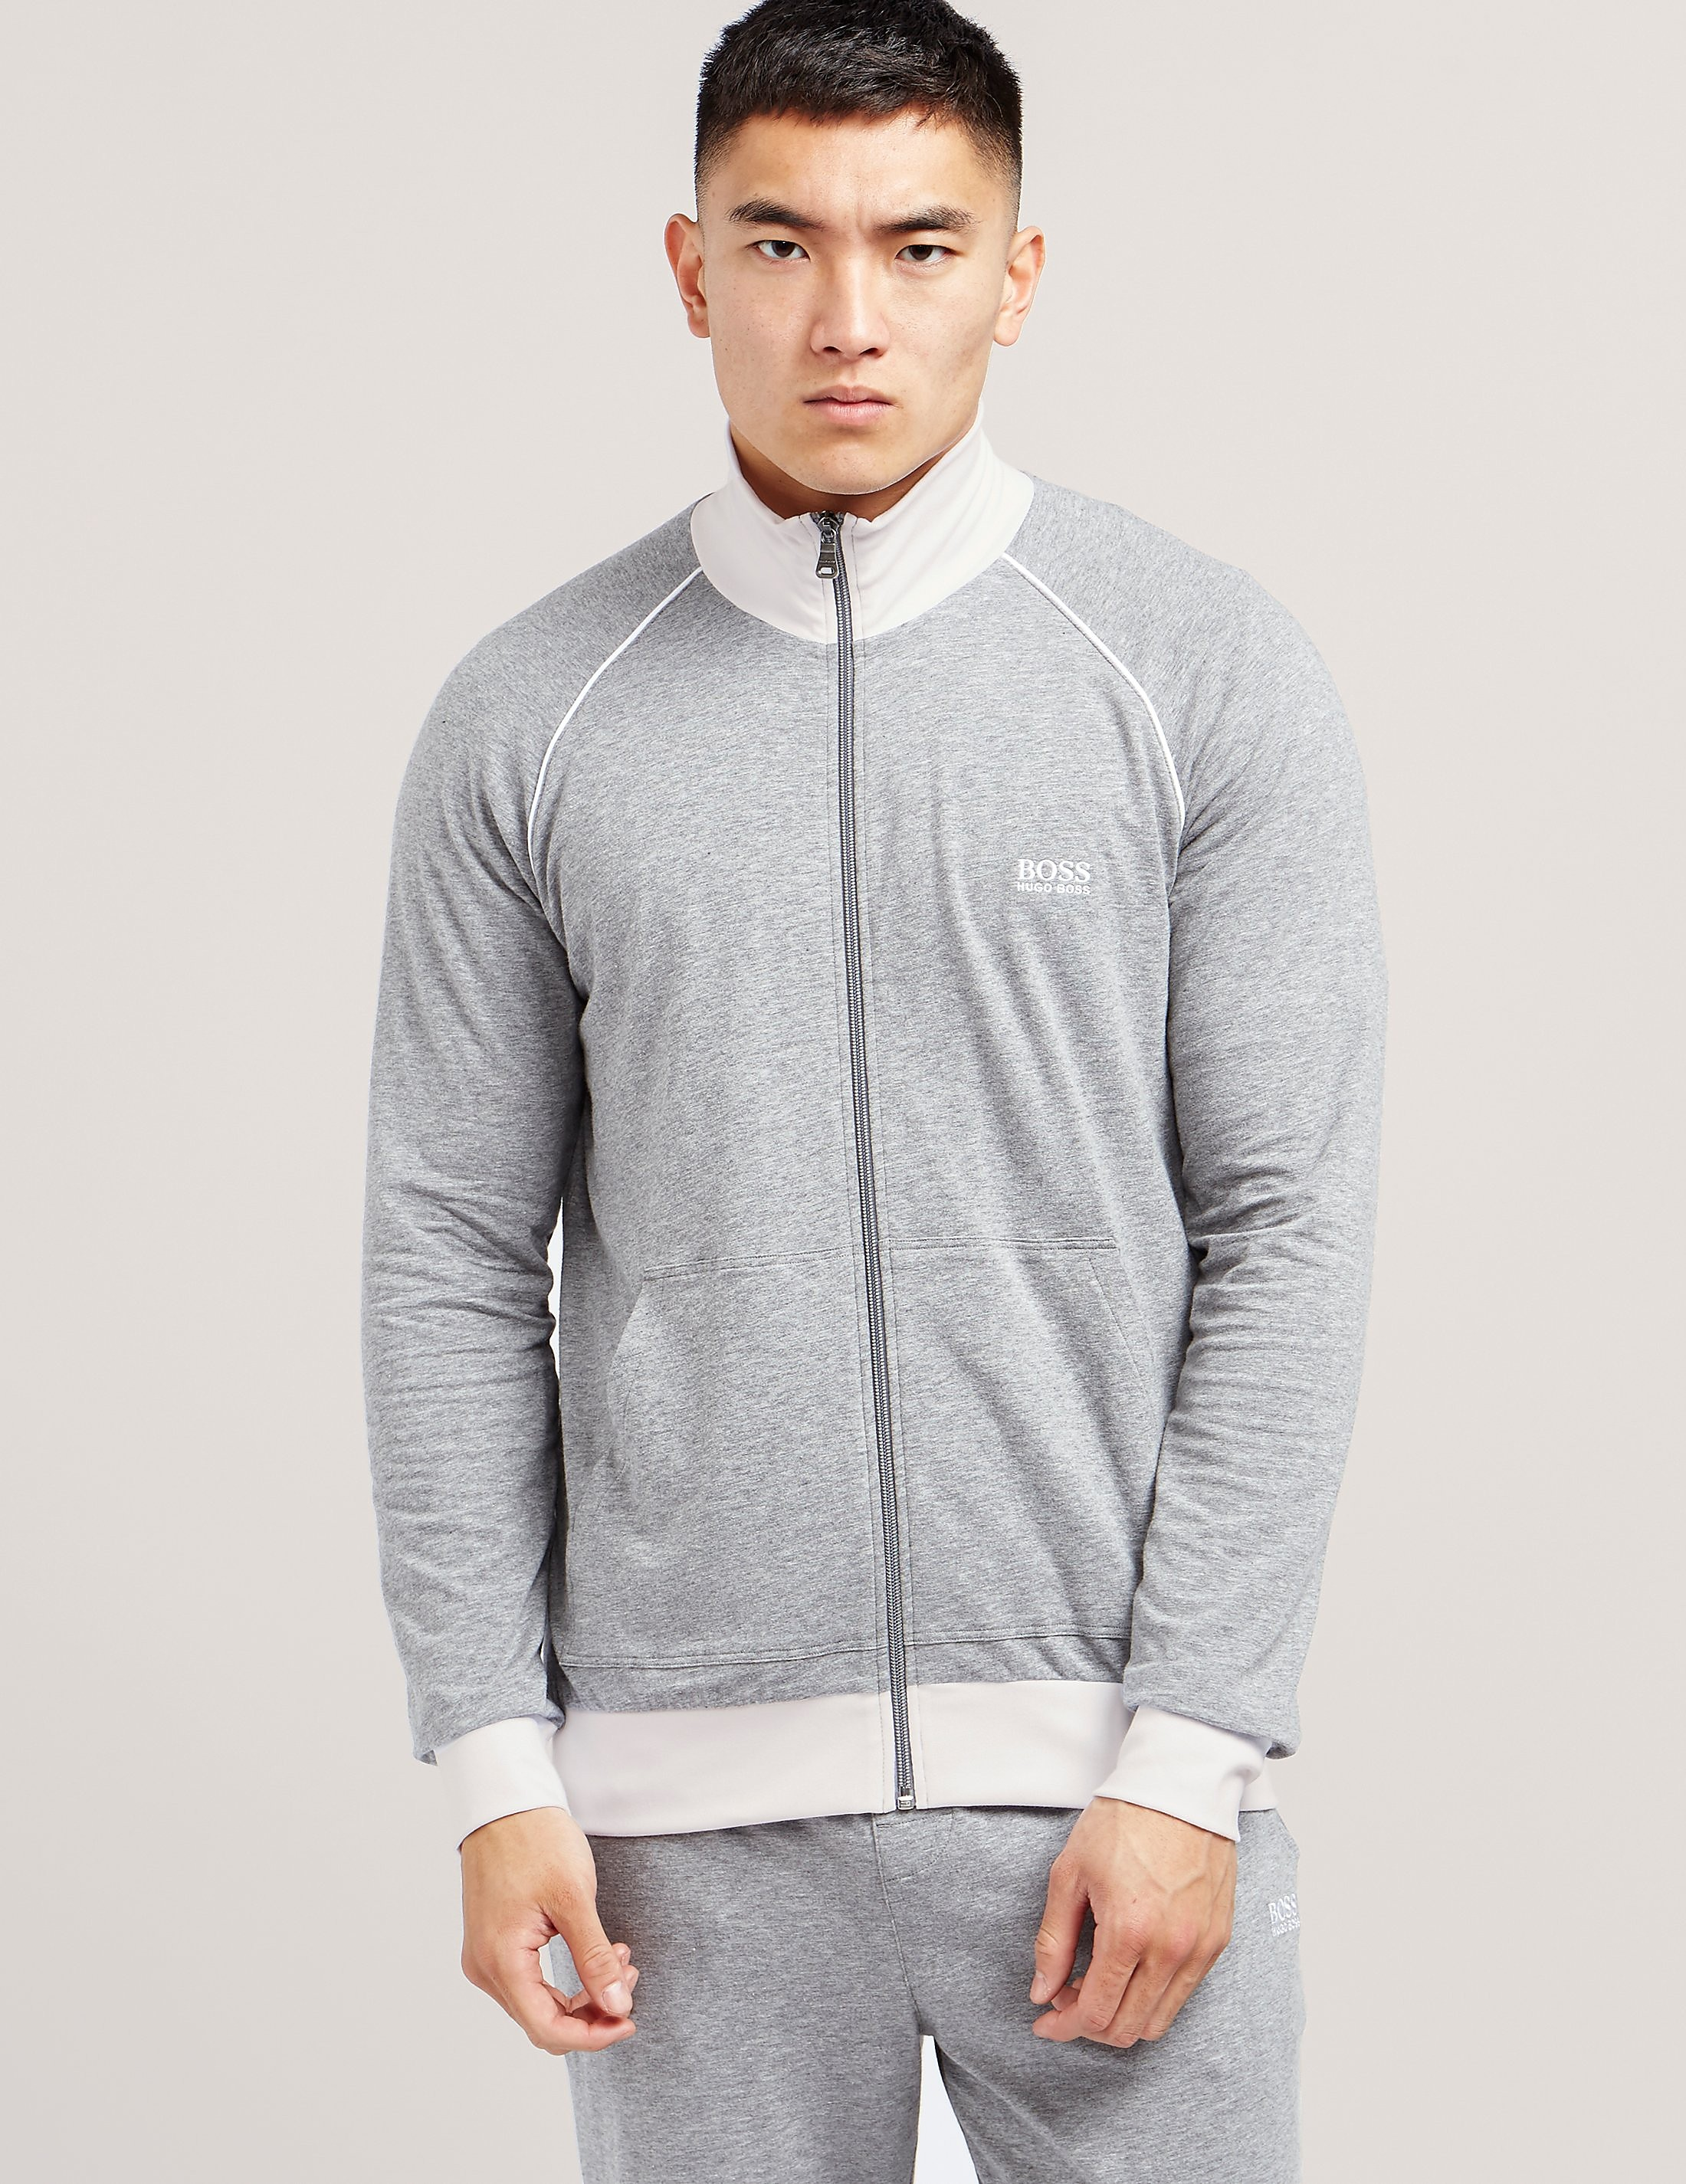 BOSS Full Zip Track Top